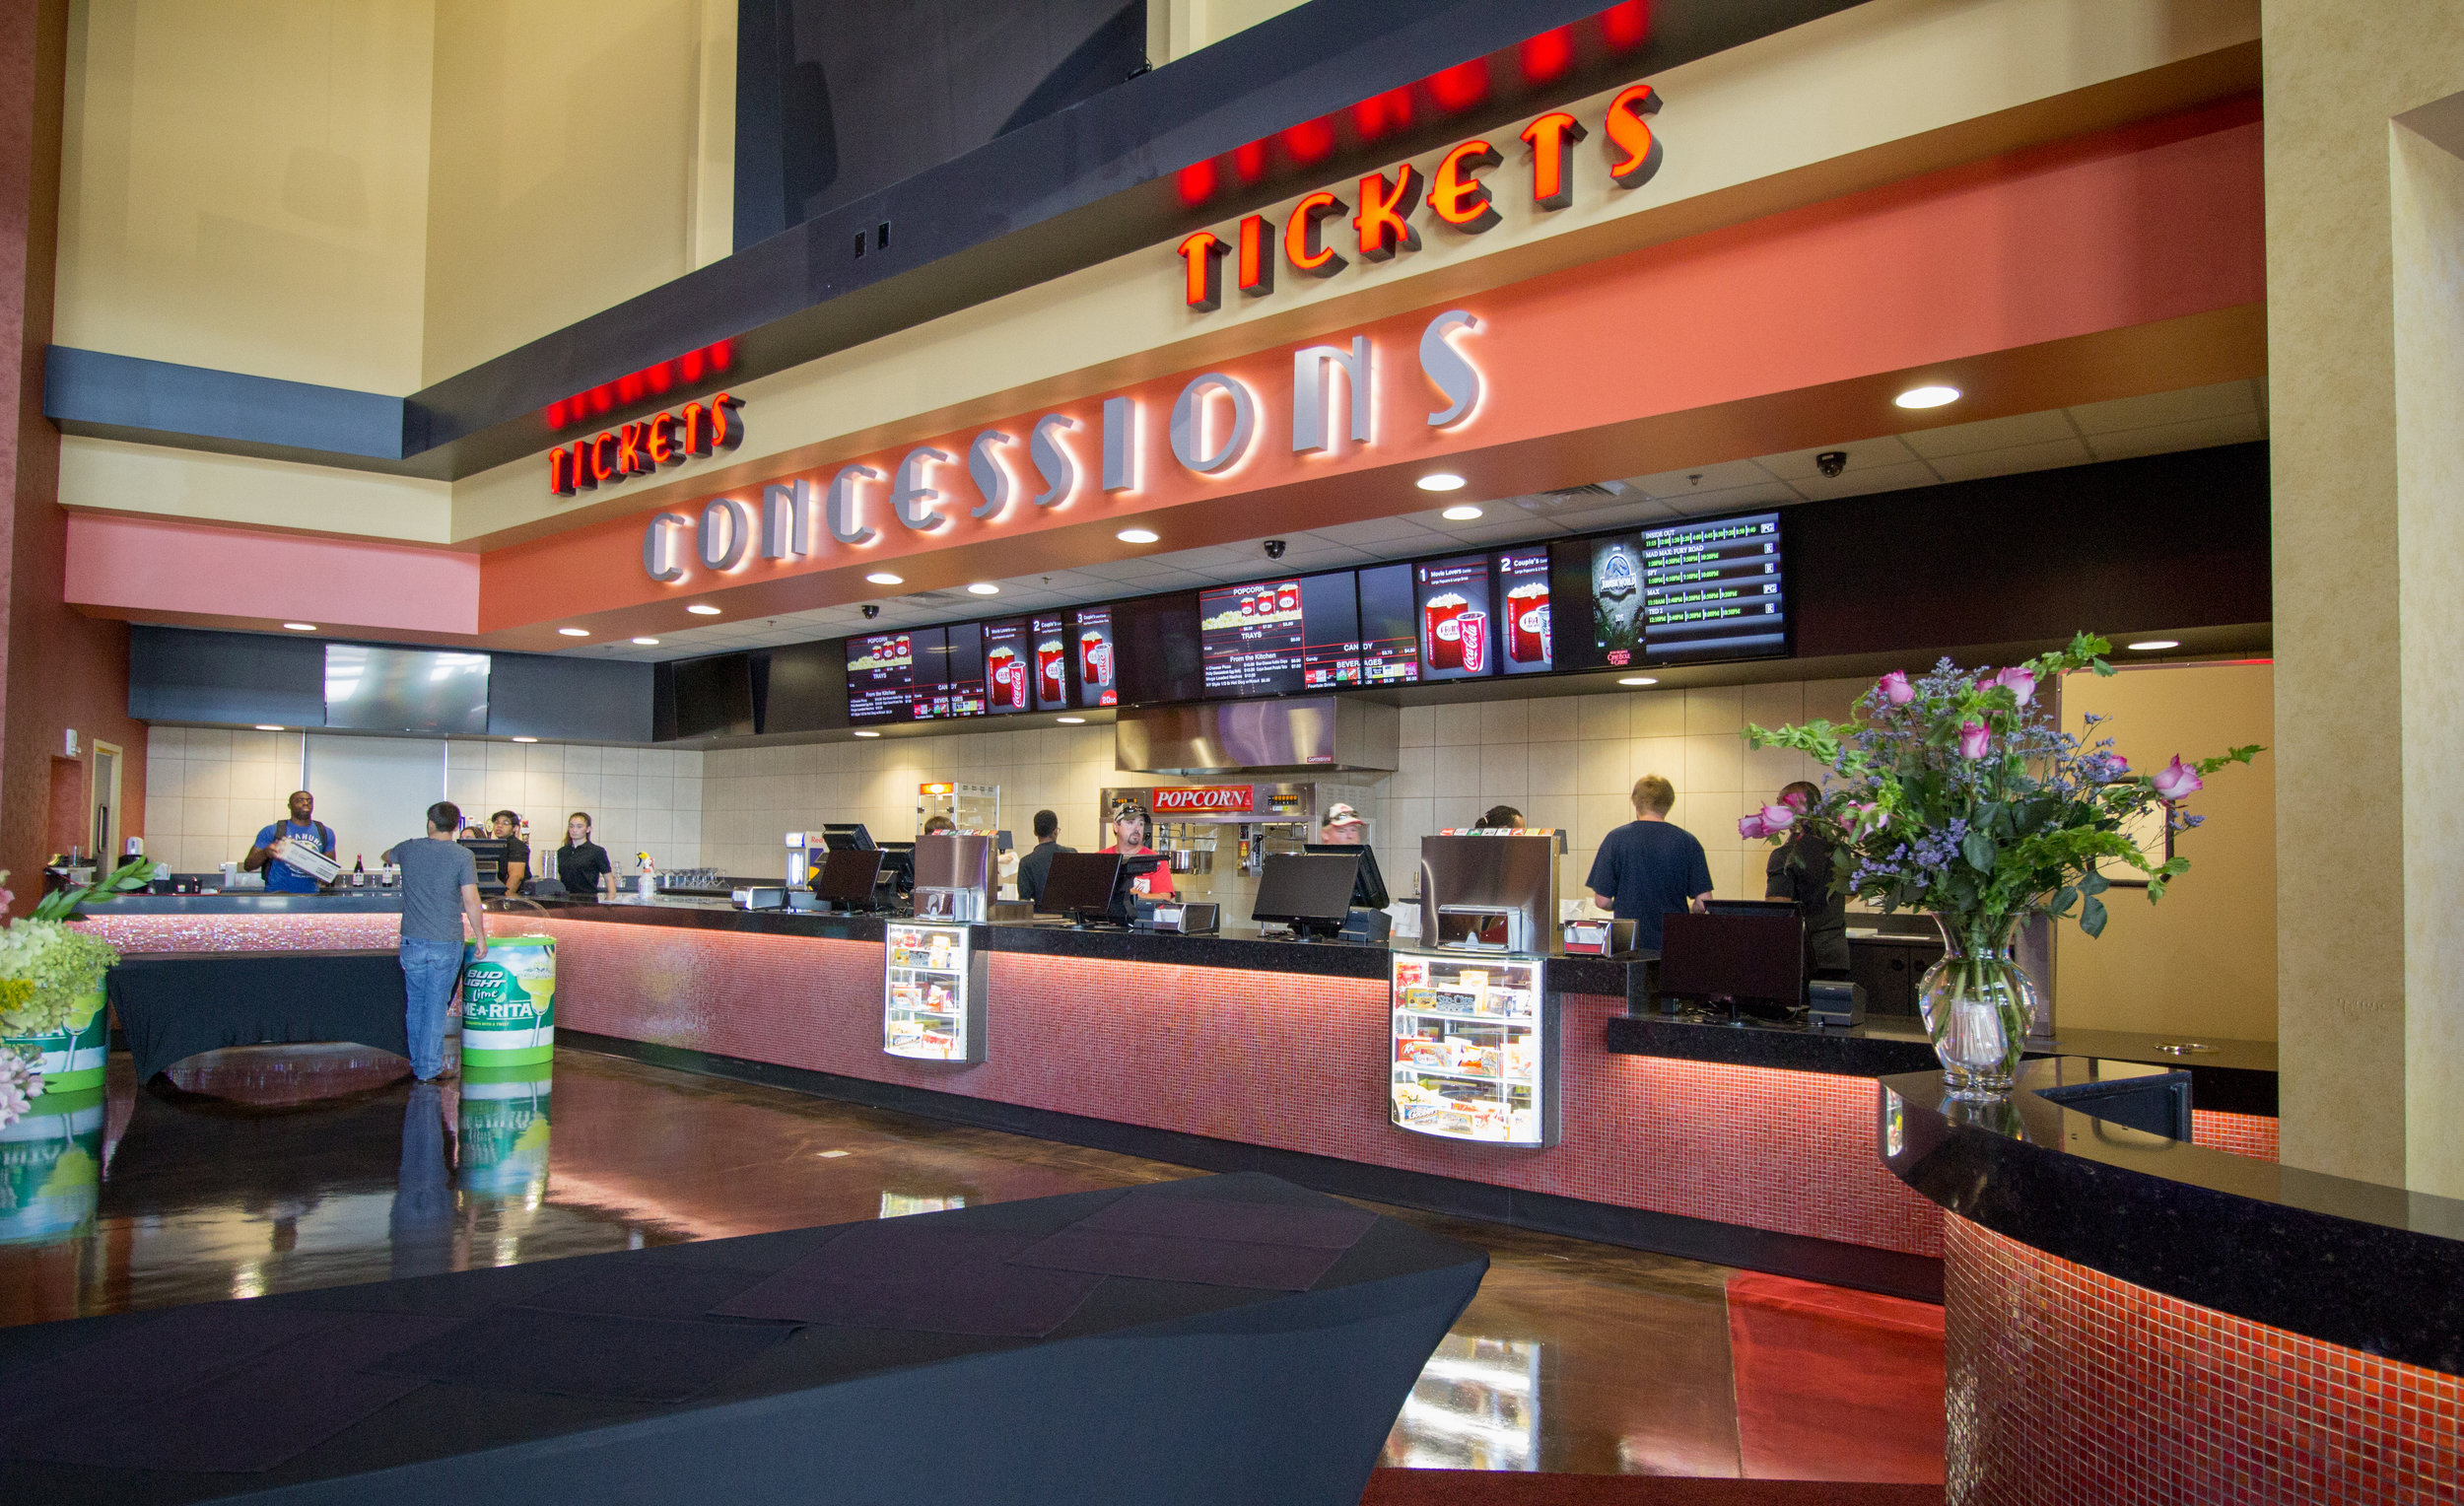 ADW-Entertainment-CineBowl-Grille-Cary-NC-3.jpg